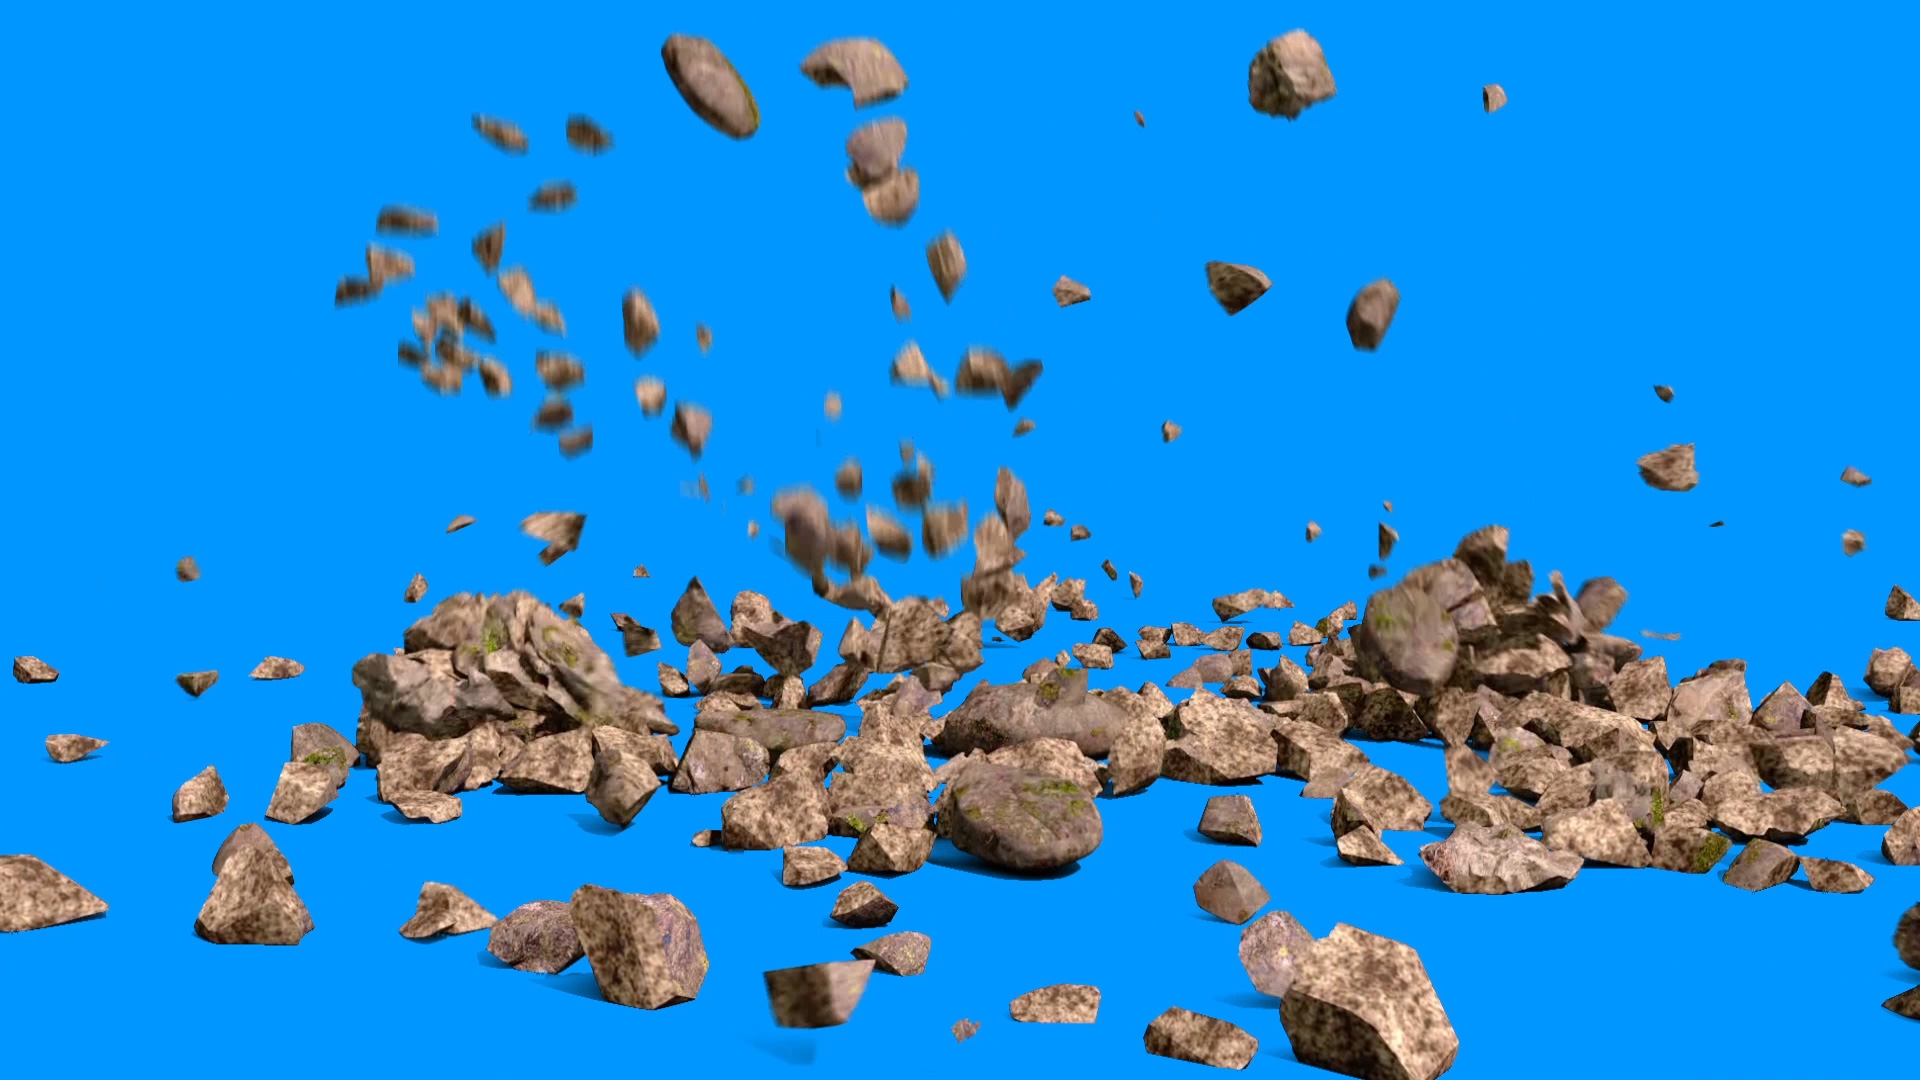 Animated Fall Wallpaper Rock Fall Stones 3d Model Animated Pixelboom